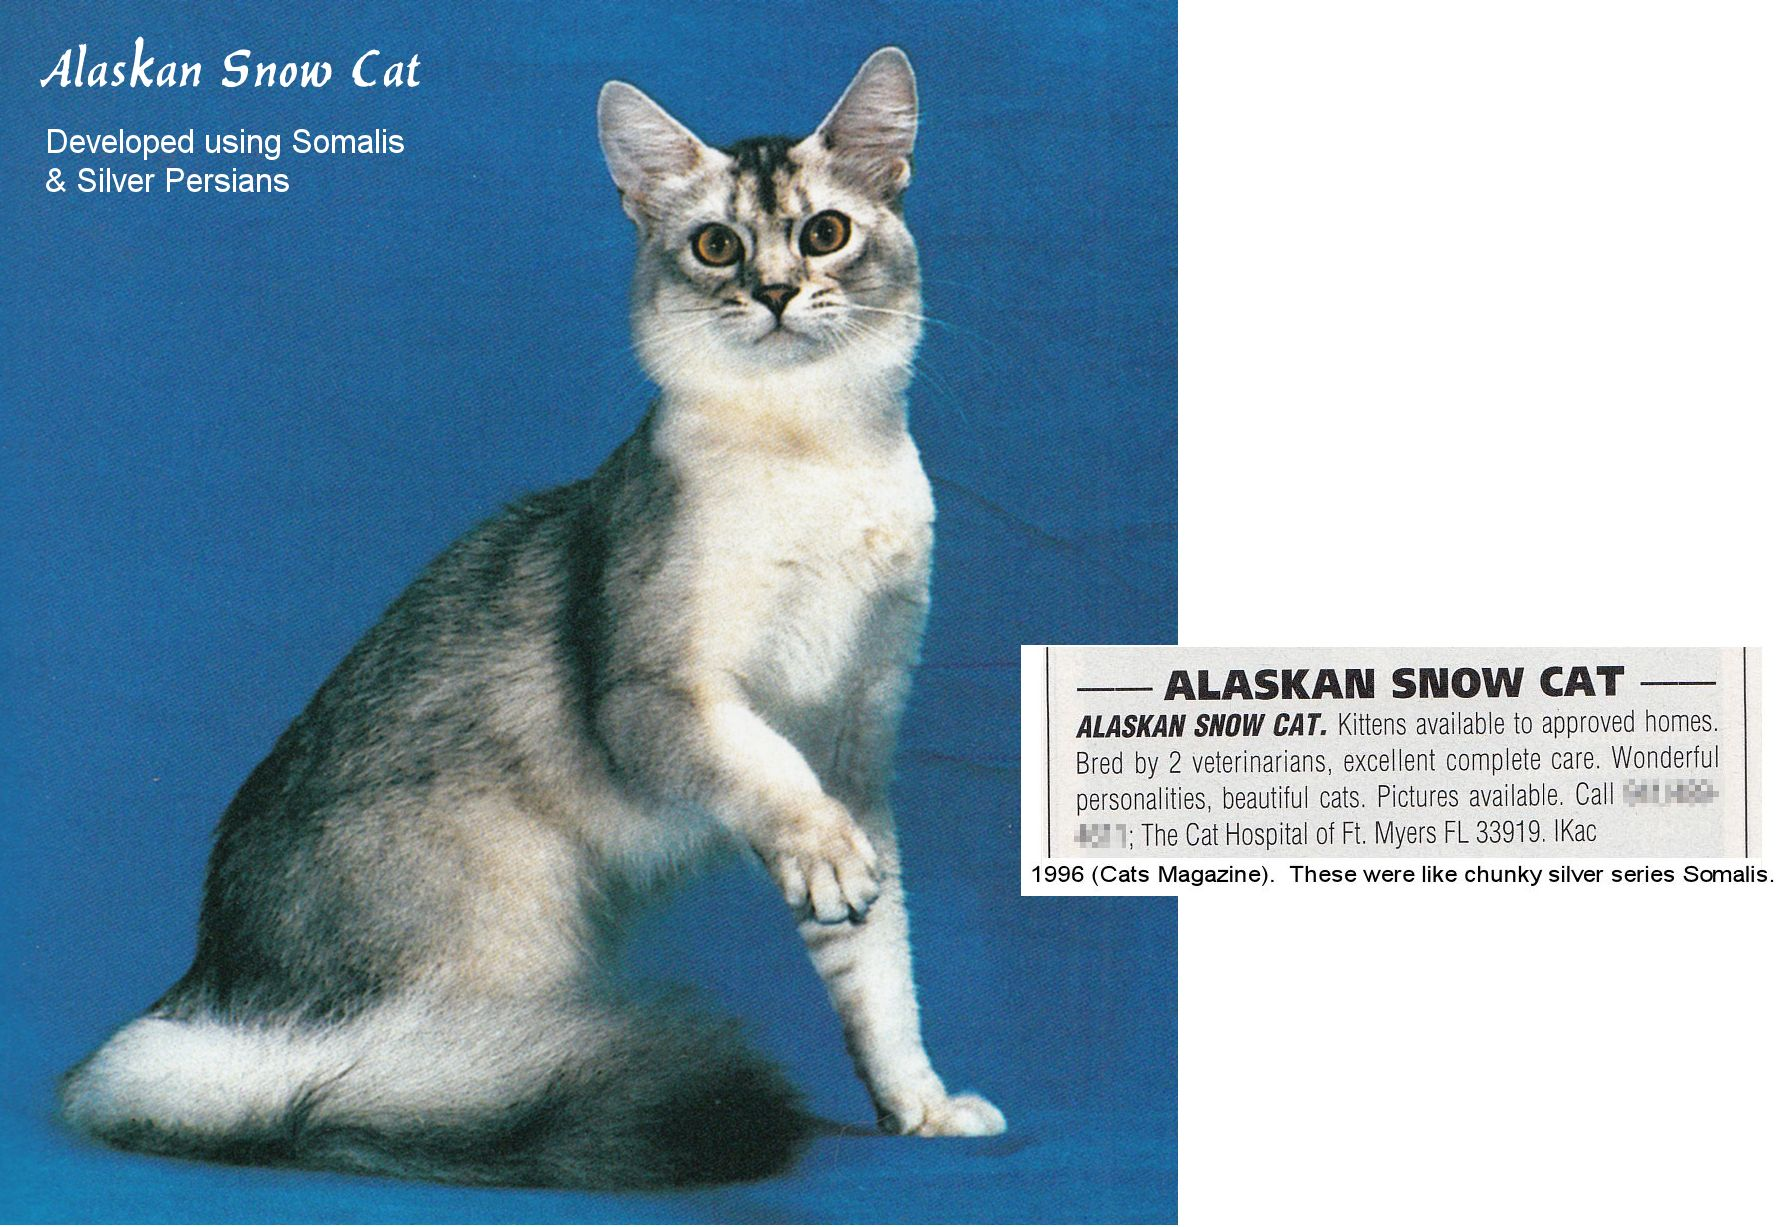 Alaskan Snow Cat from the 1990s